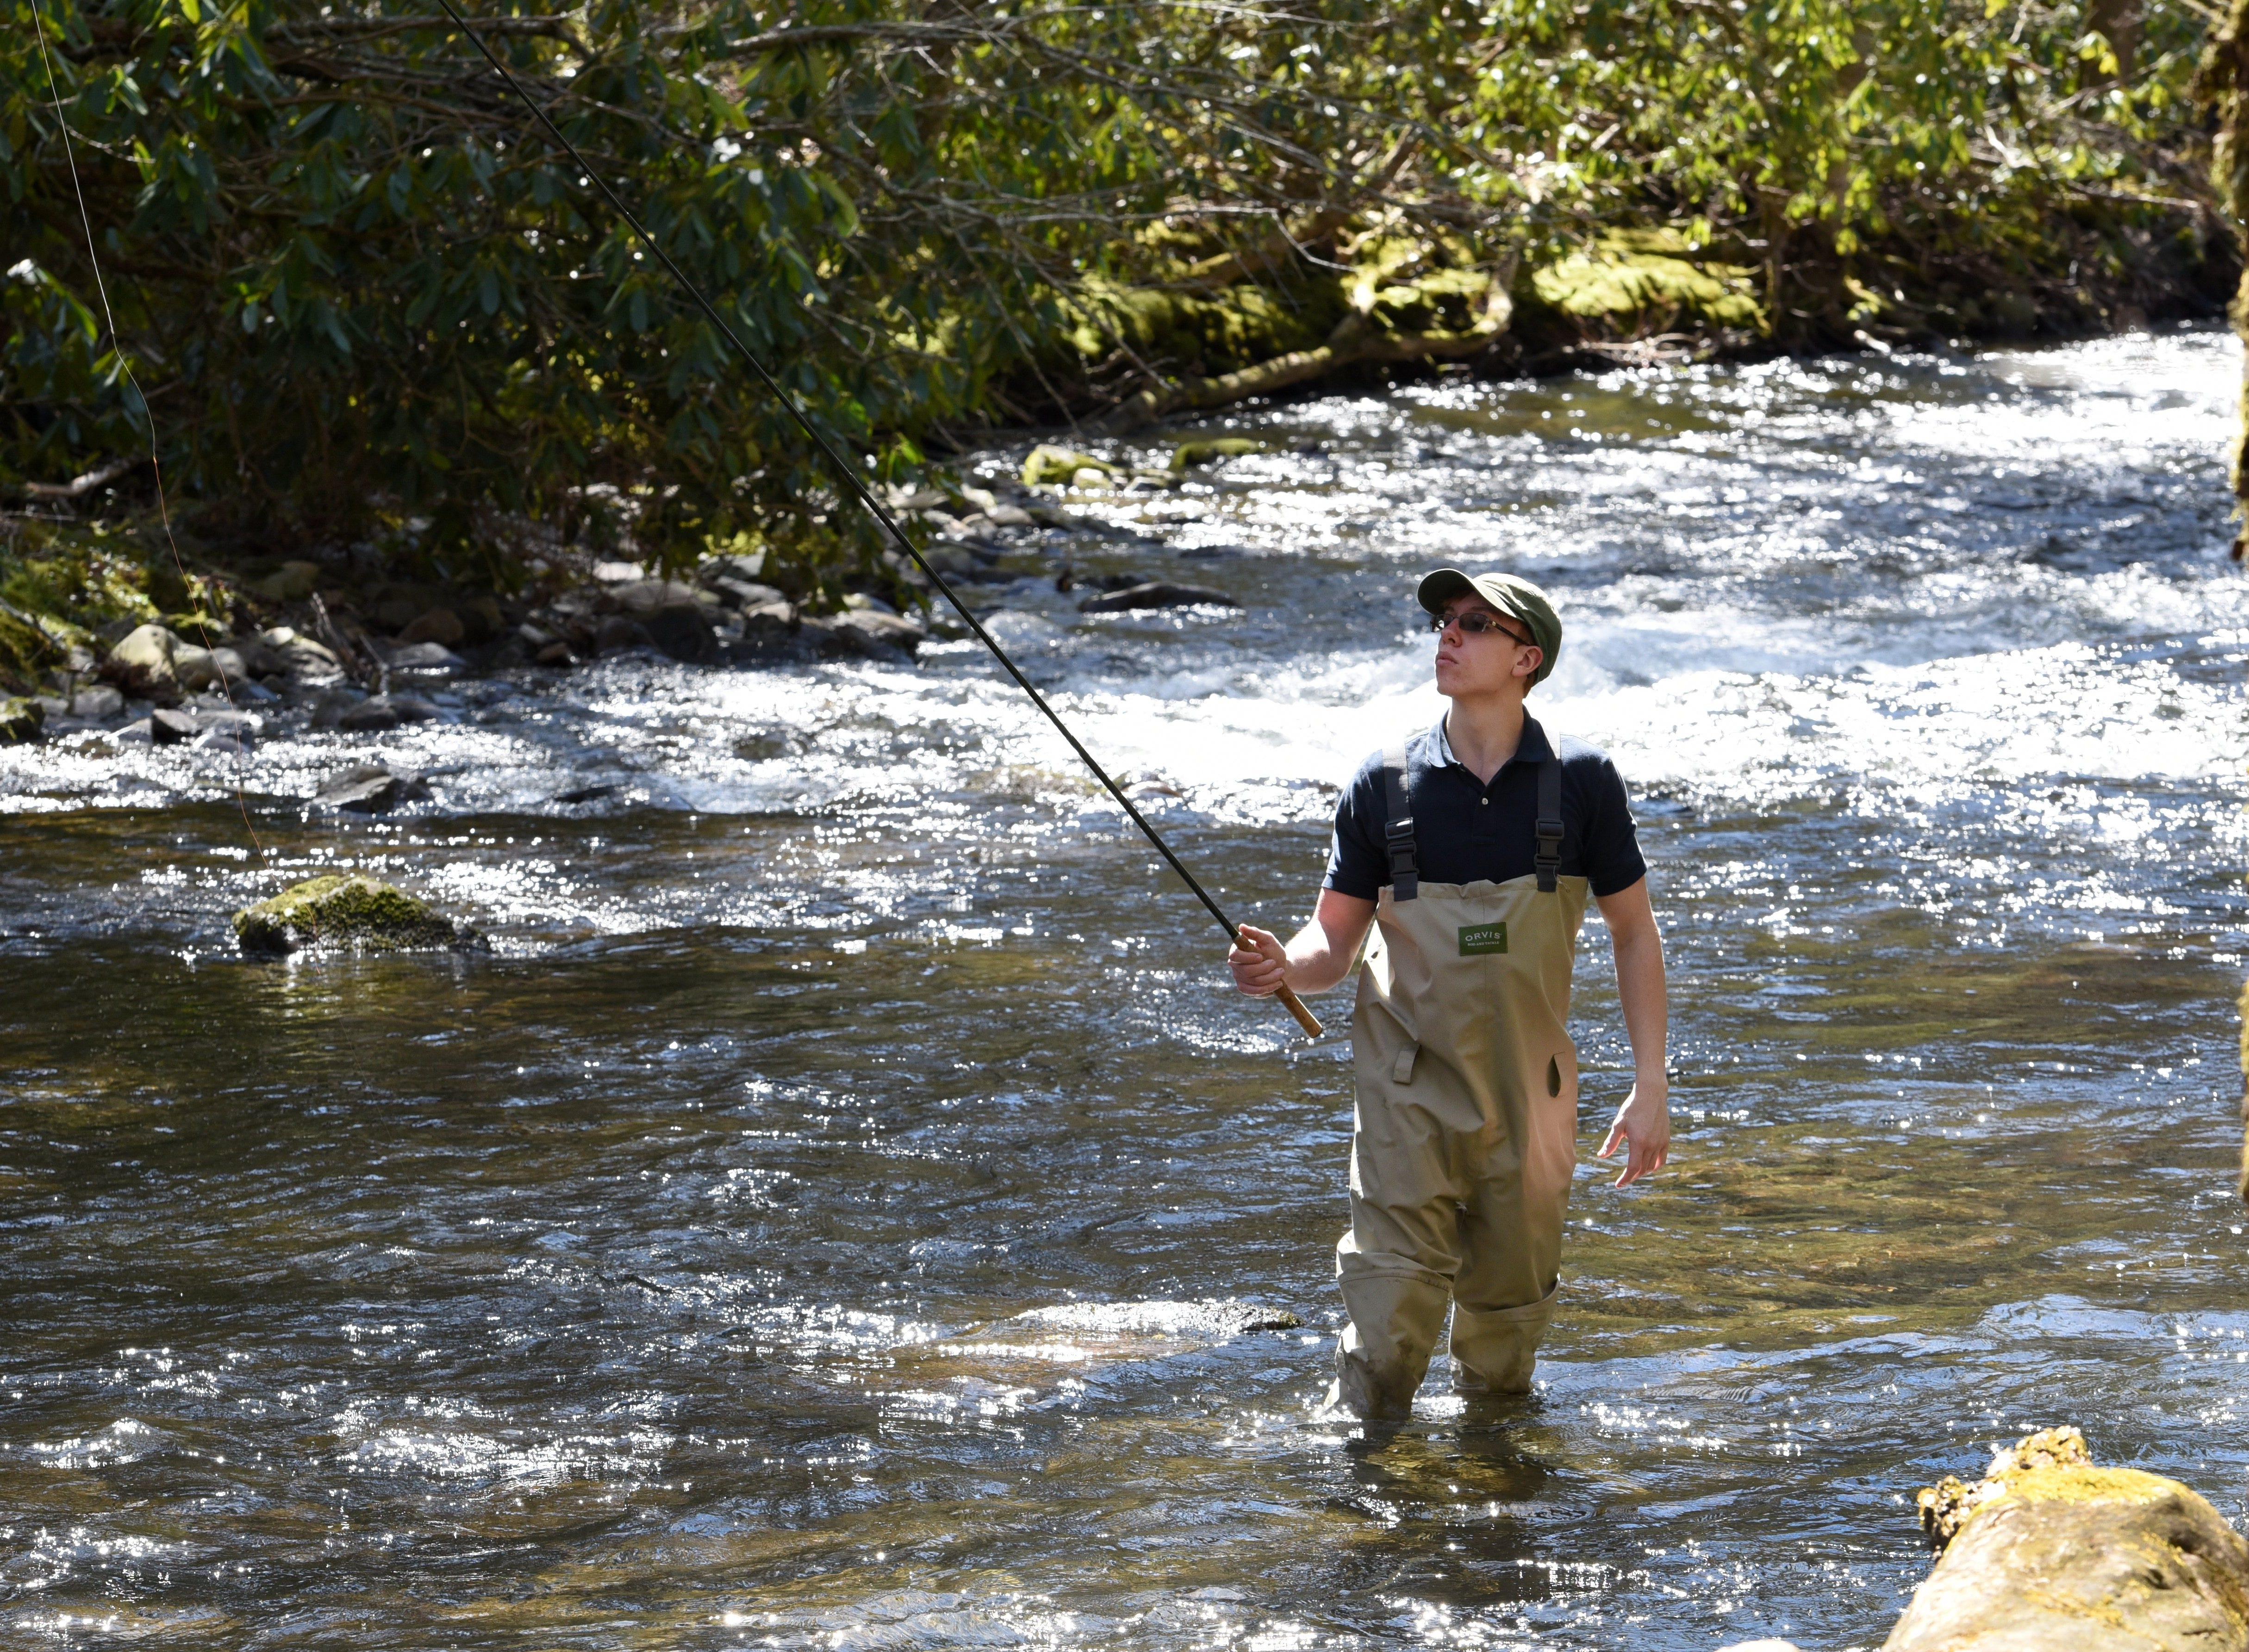 Alex Bermuda fishing in the Little River along the road to Elkmont Campgrounds in the Great Smoky Mountains National Park Tuesday, Mar. 15, 2016.  (MICHAEL PATRICK/NEWS SENTINEL)